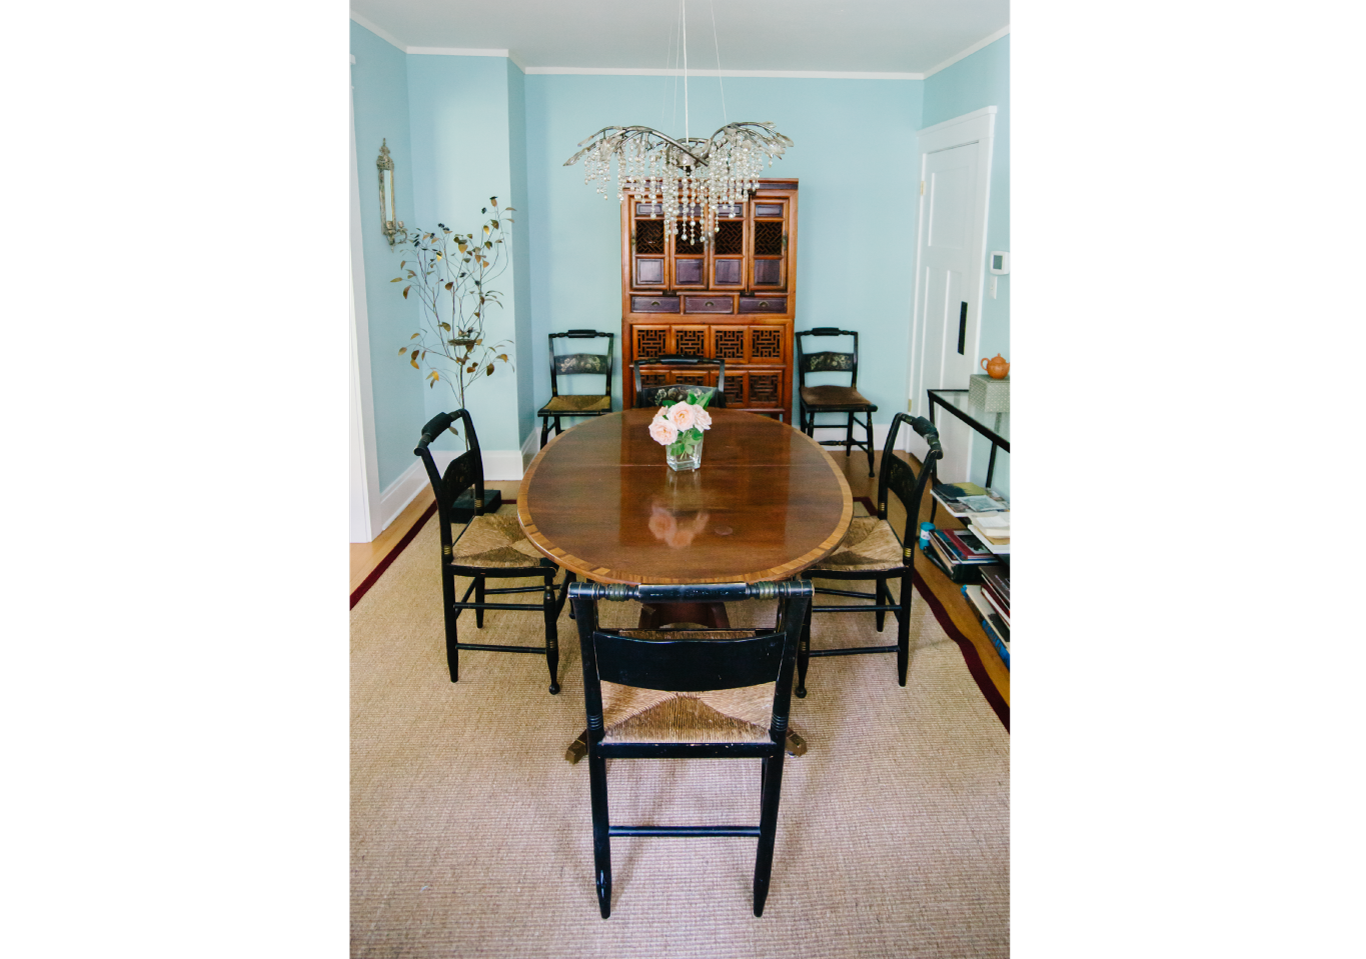 Antique wooden dining room table with black chairs